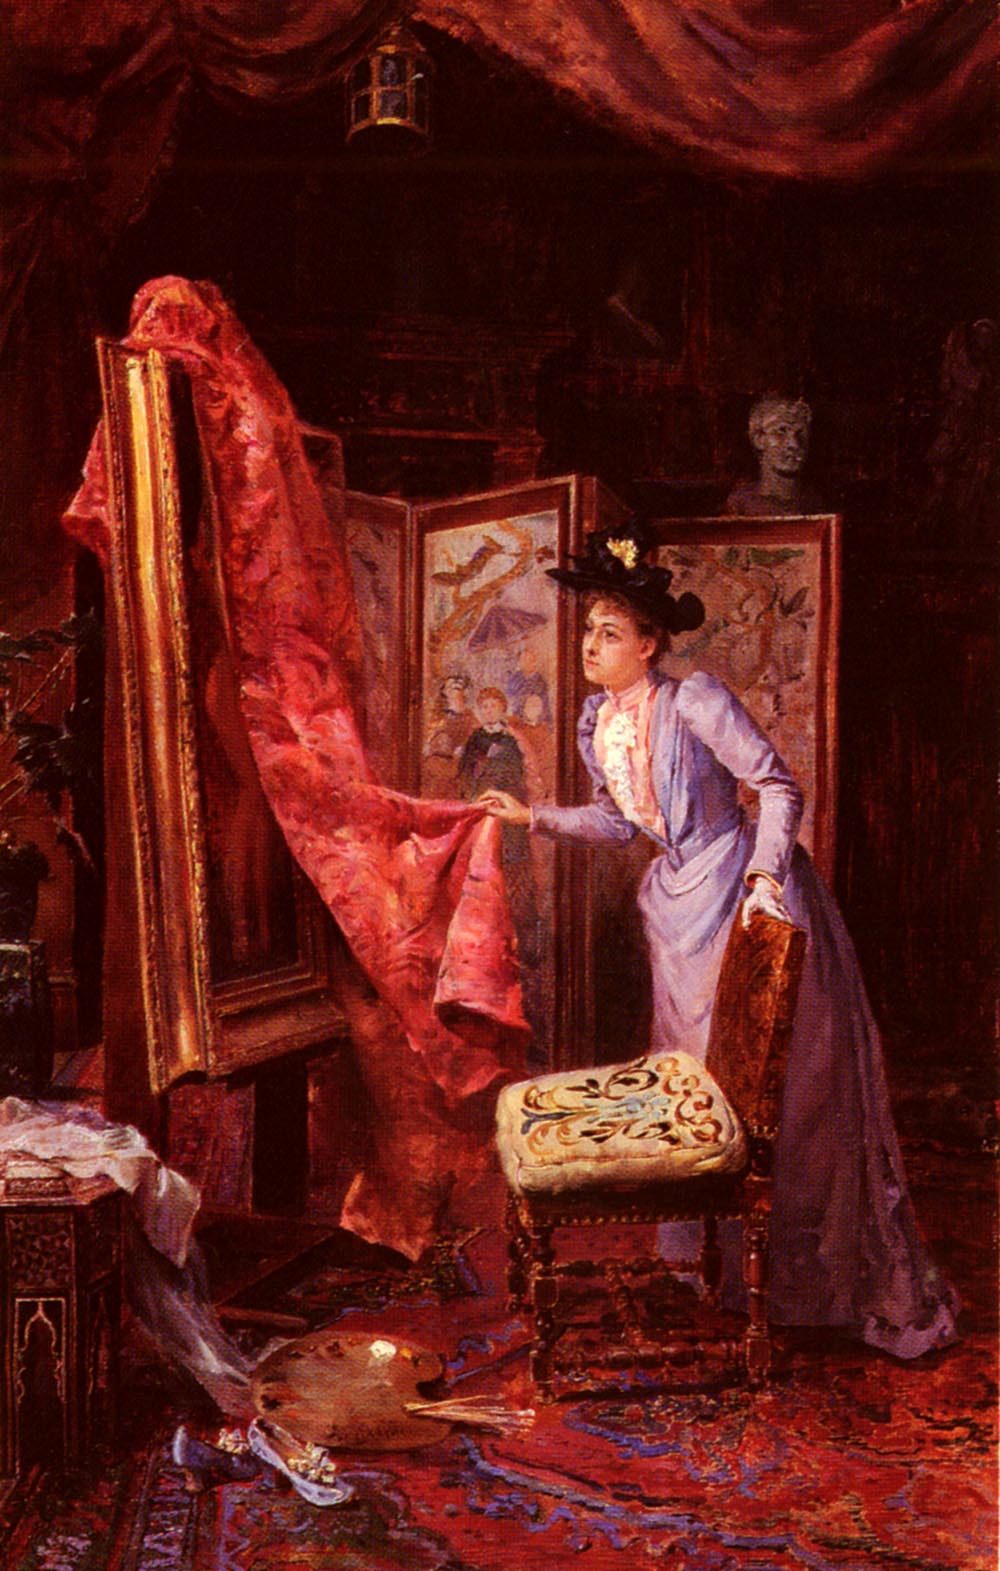 Painting studying :: Achille Vianelli - Romantic scenes in art and painting ôîòî